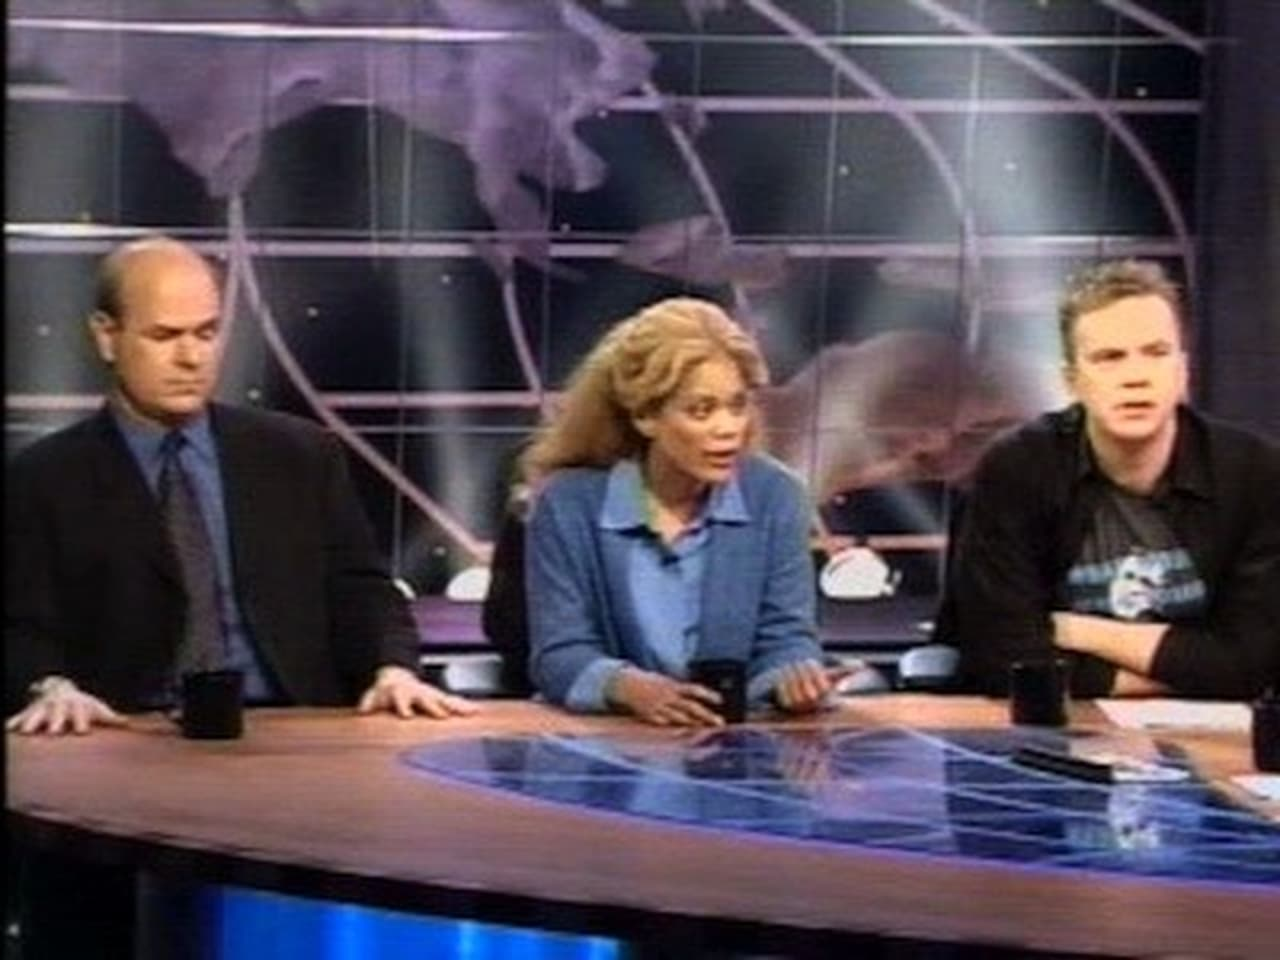 Real Time with Bill Maher - Season 1 Episode 5 : March 21, 2003